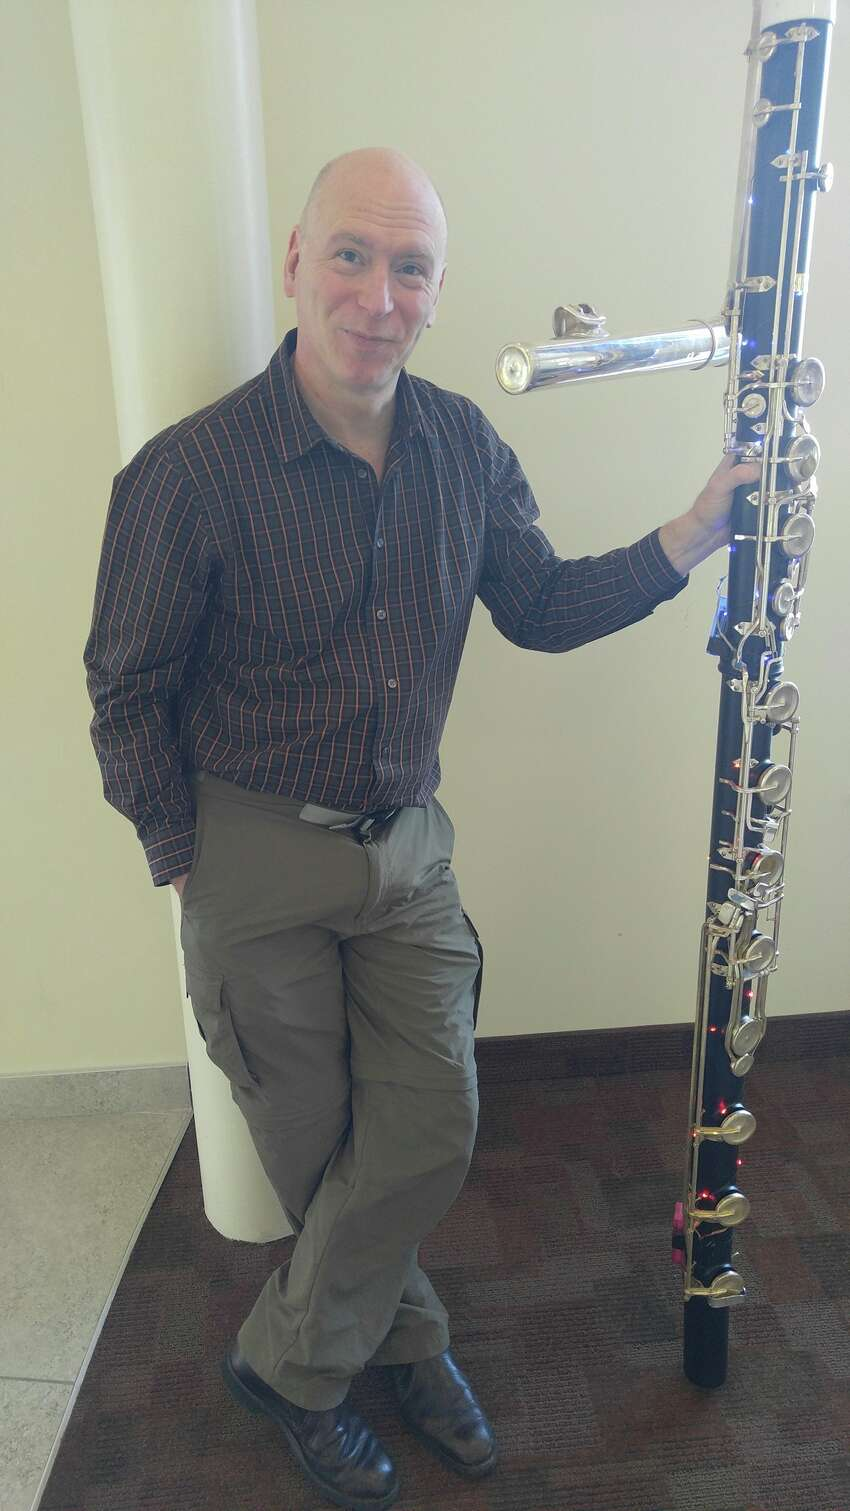 Norman Thibodeau with Hogenhuis contrabass flute - photo credit Graham Wolfe